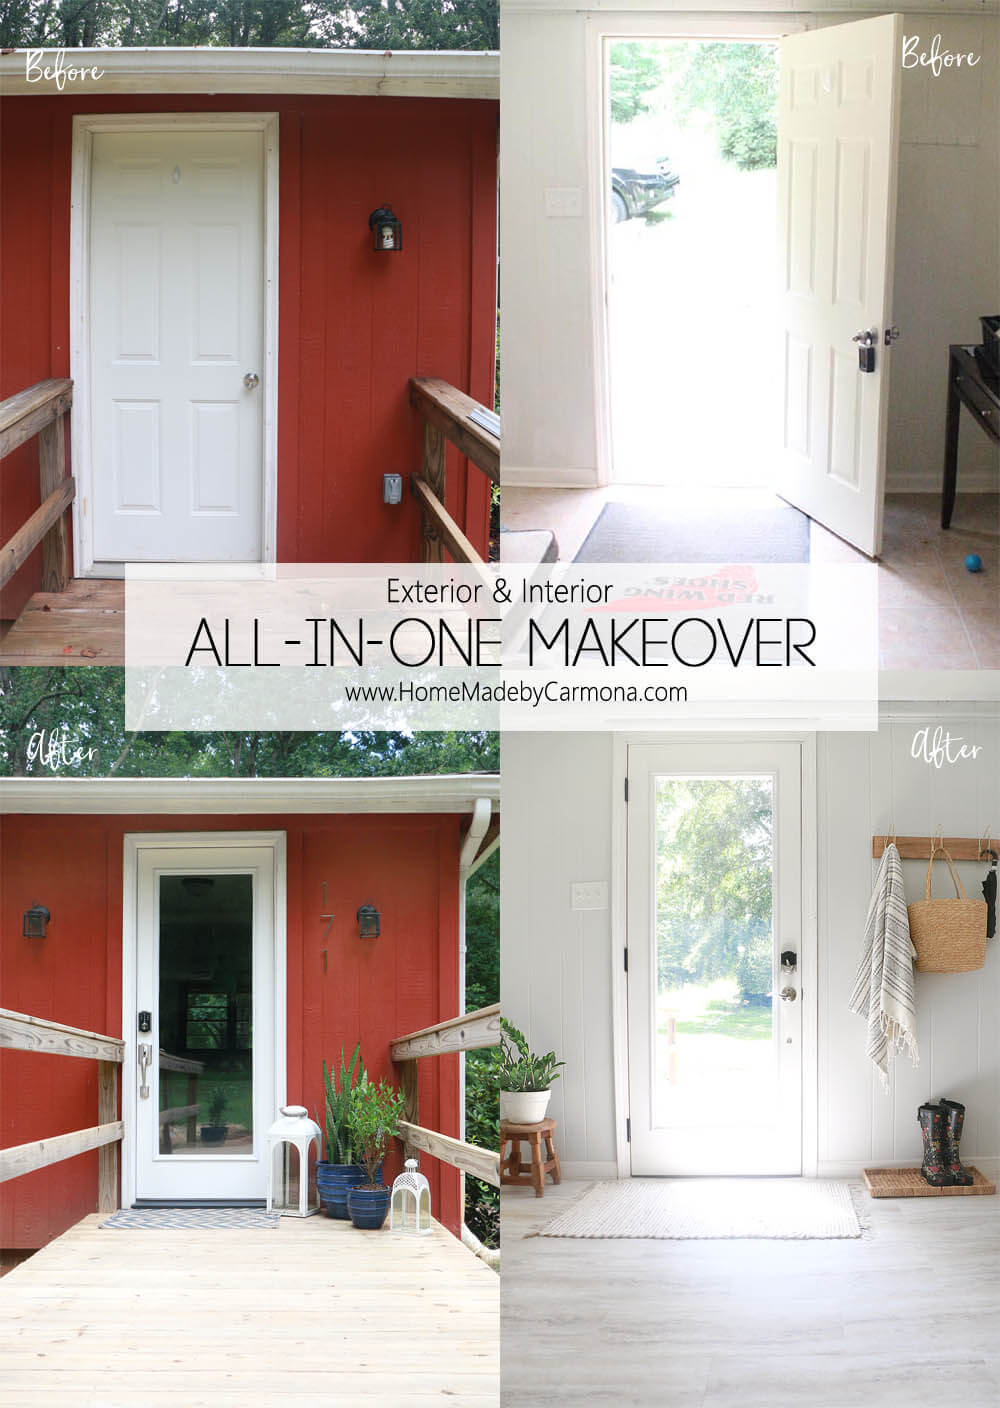 Exterior and Interior Makeover In One